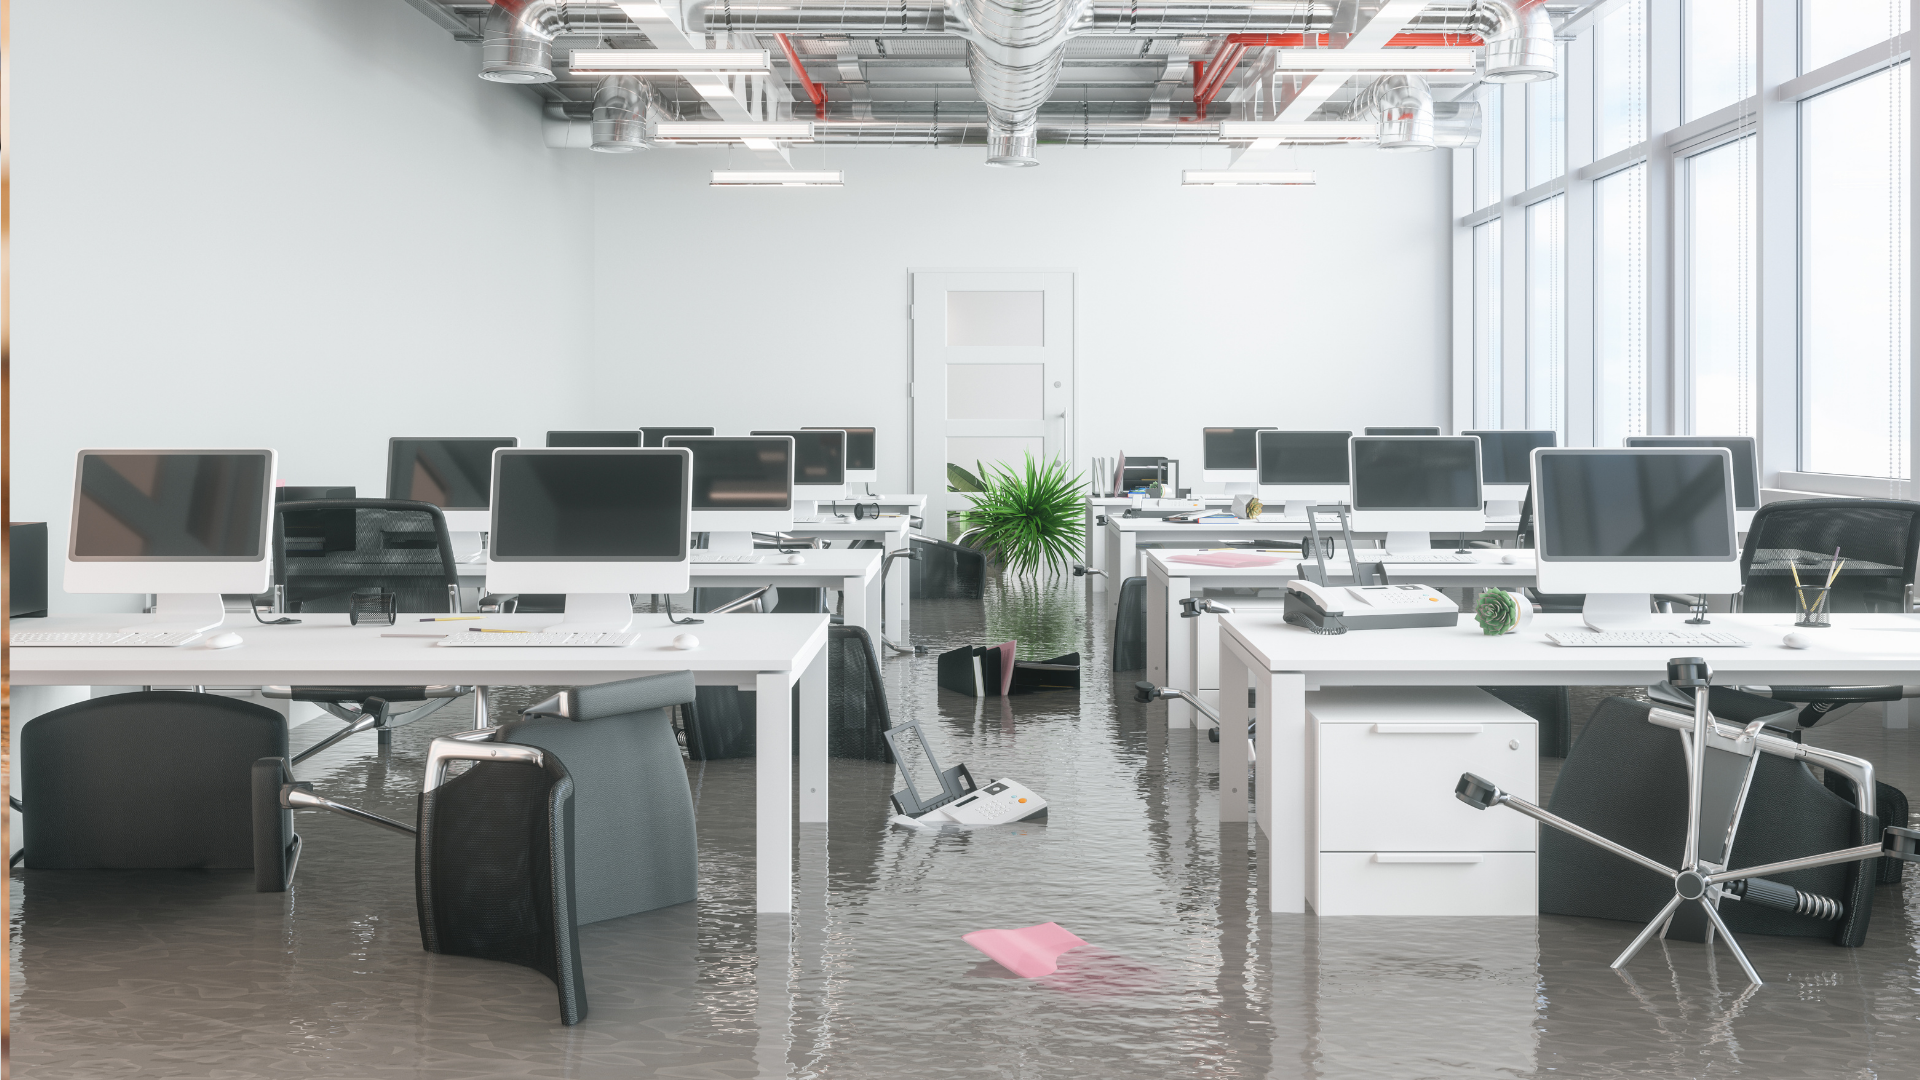 Water damage in offices